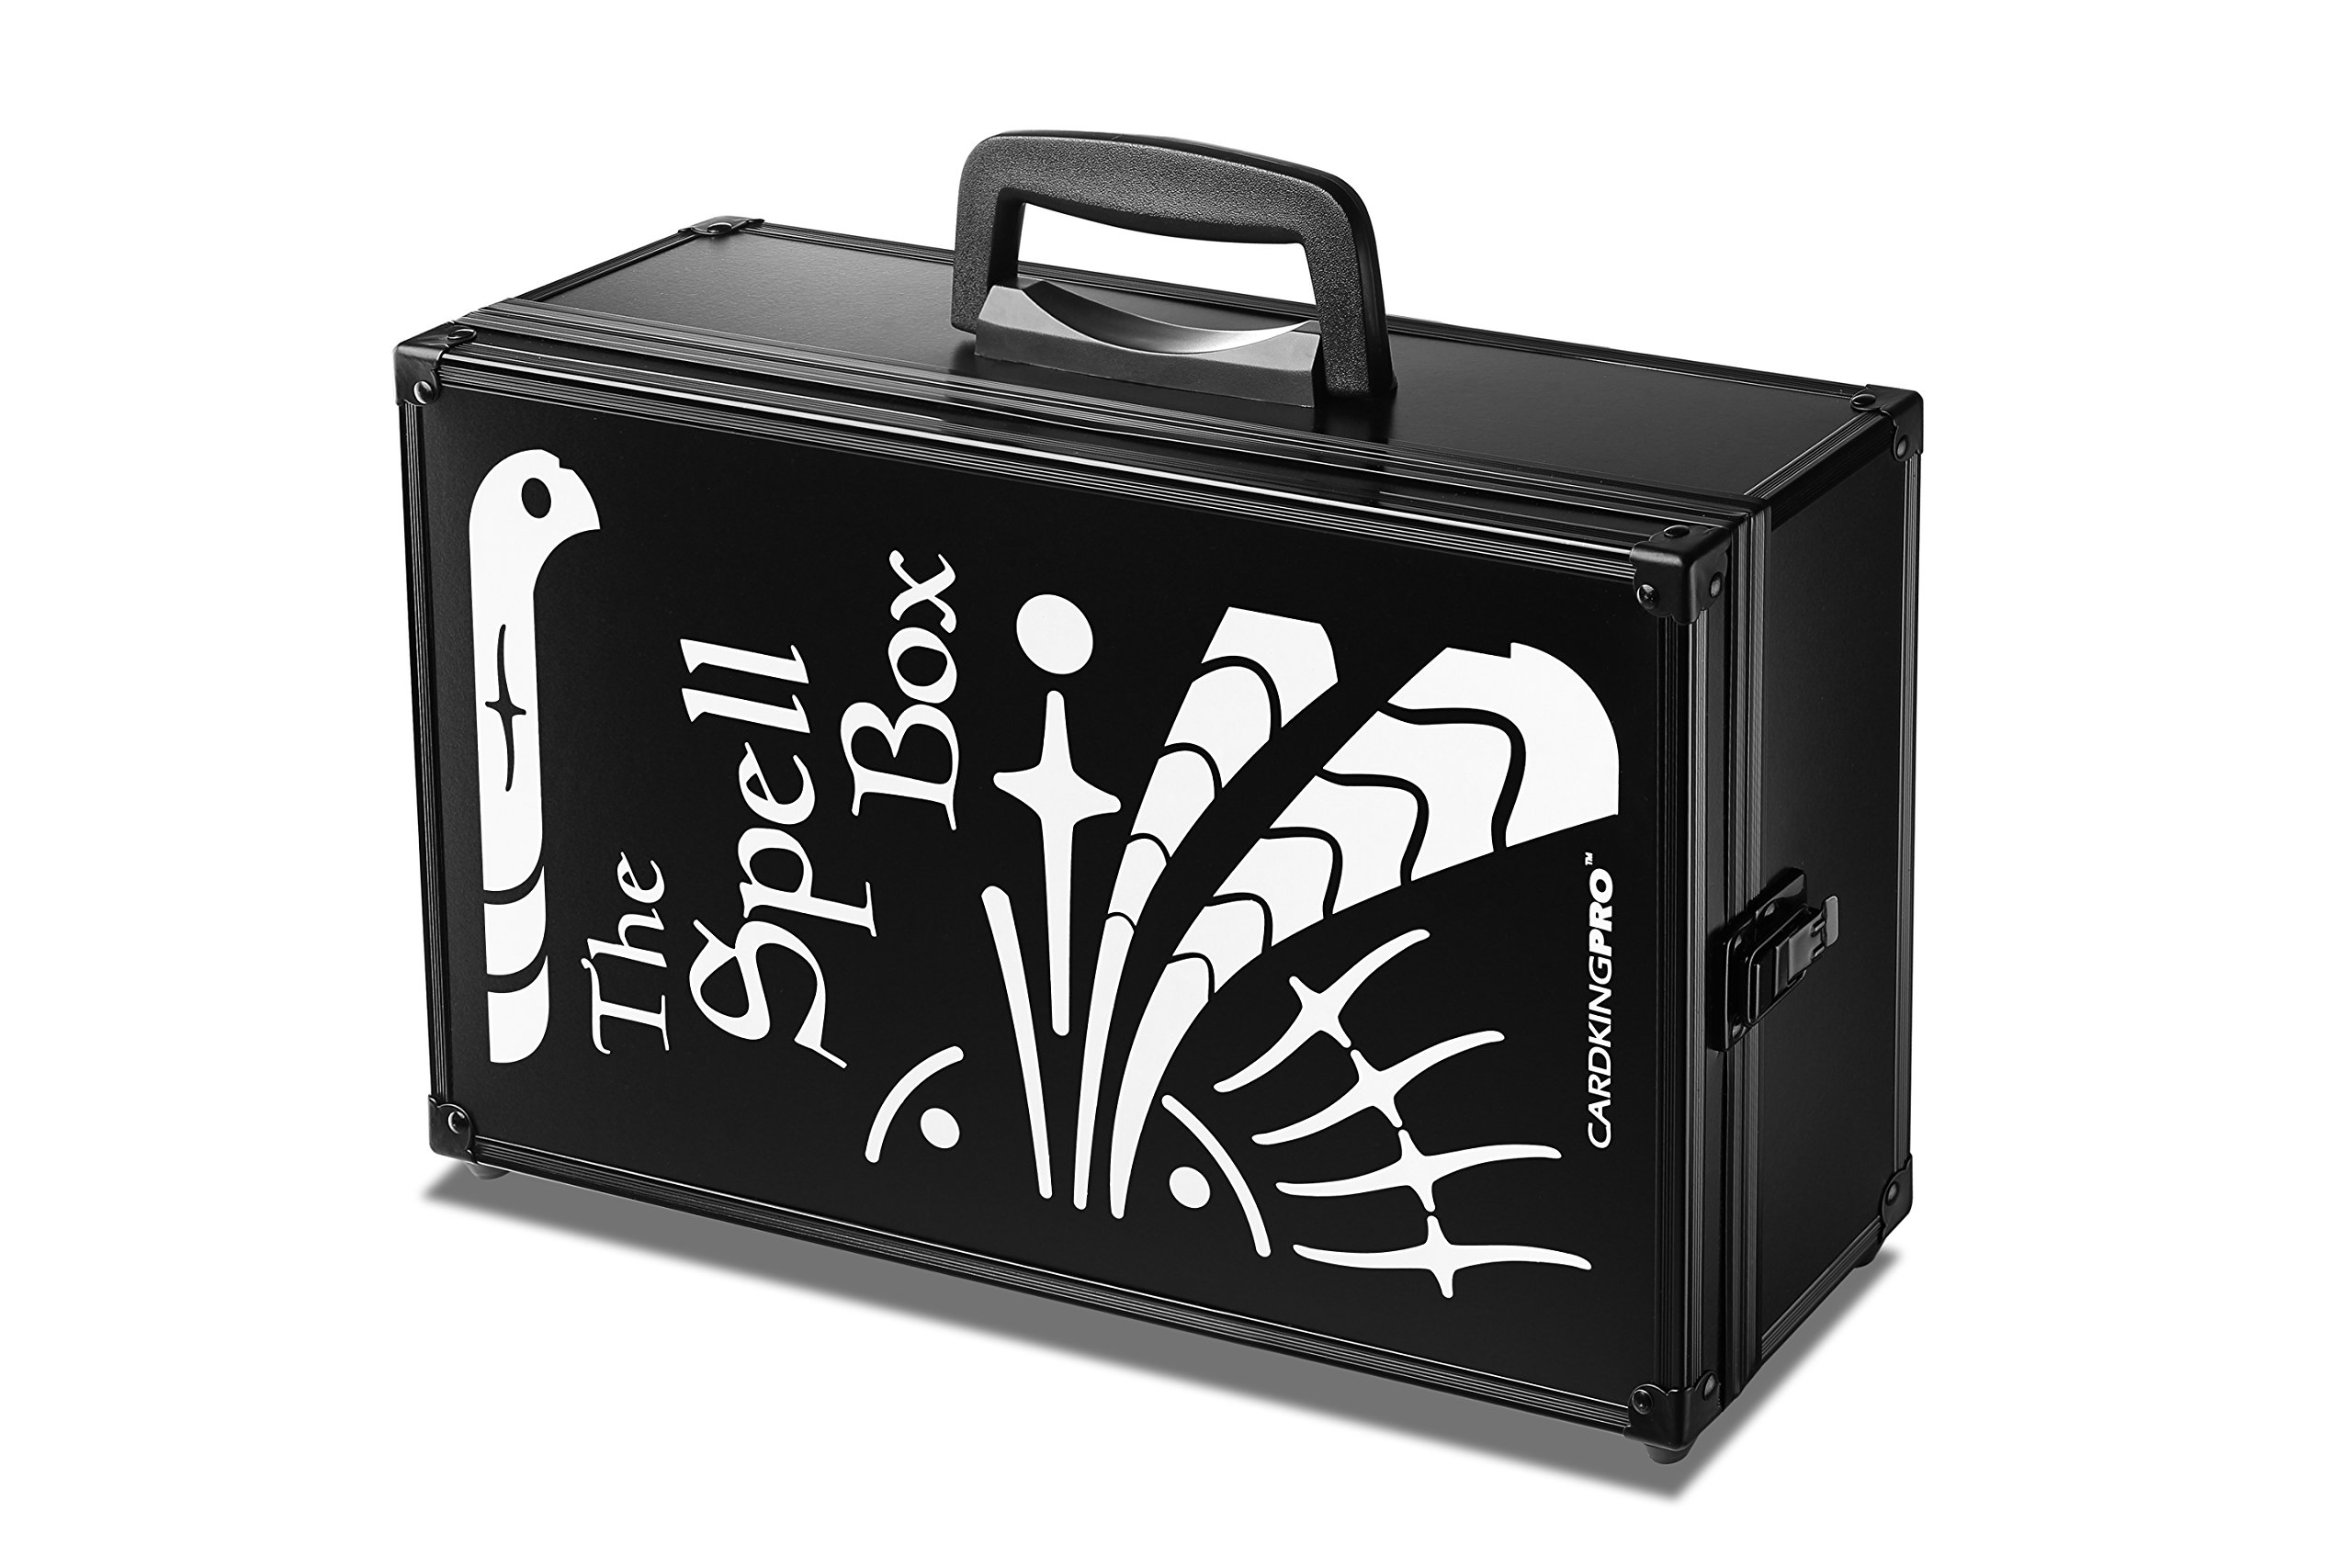 Game Card Storage Case (BBB/MTG Edition)   Suitable for Magic The Gathering, Yugioh, and Other TCG Etc (Game Not Included)   Includes 8 Dividers   Fits up to 2500 Loose Unsleeved Cards